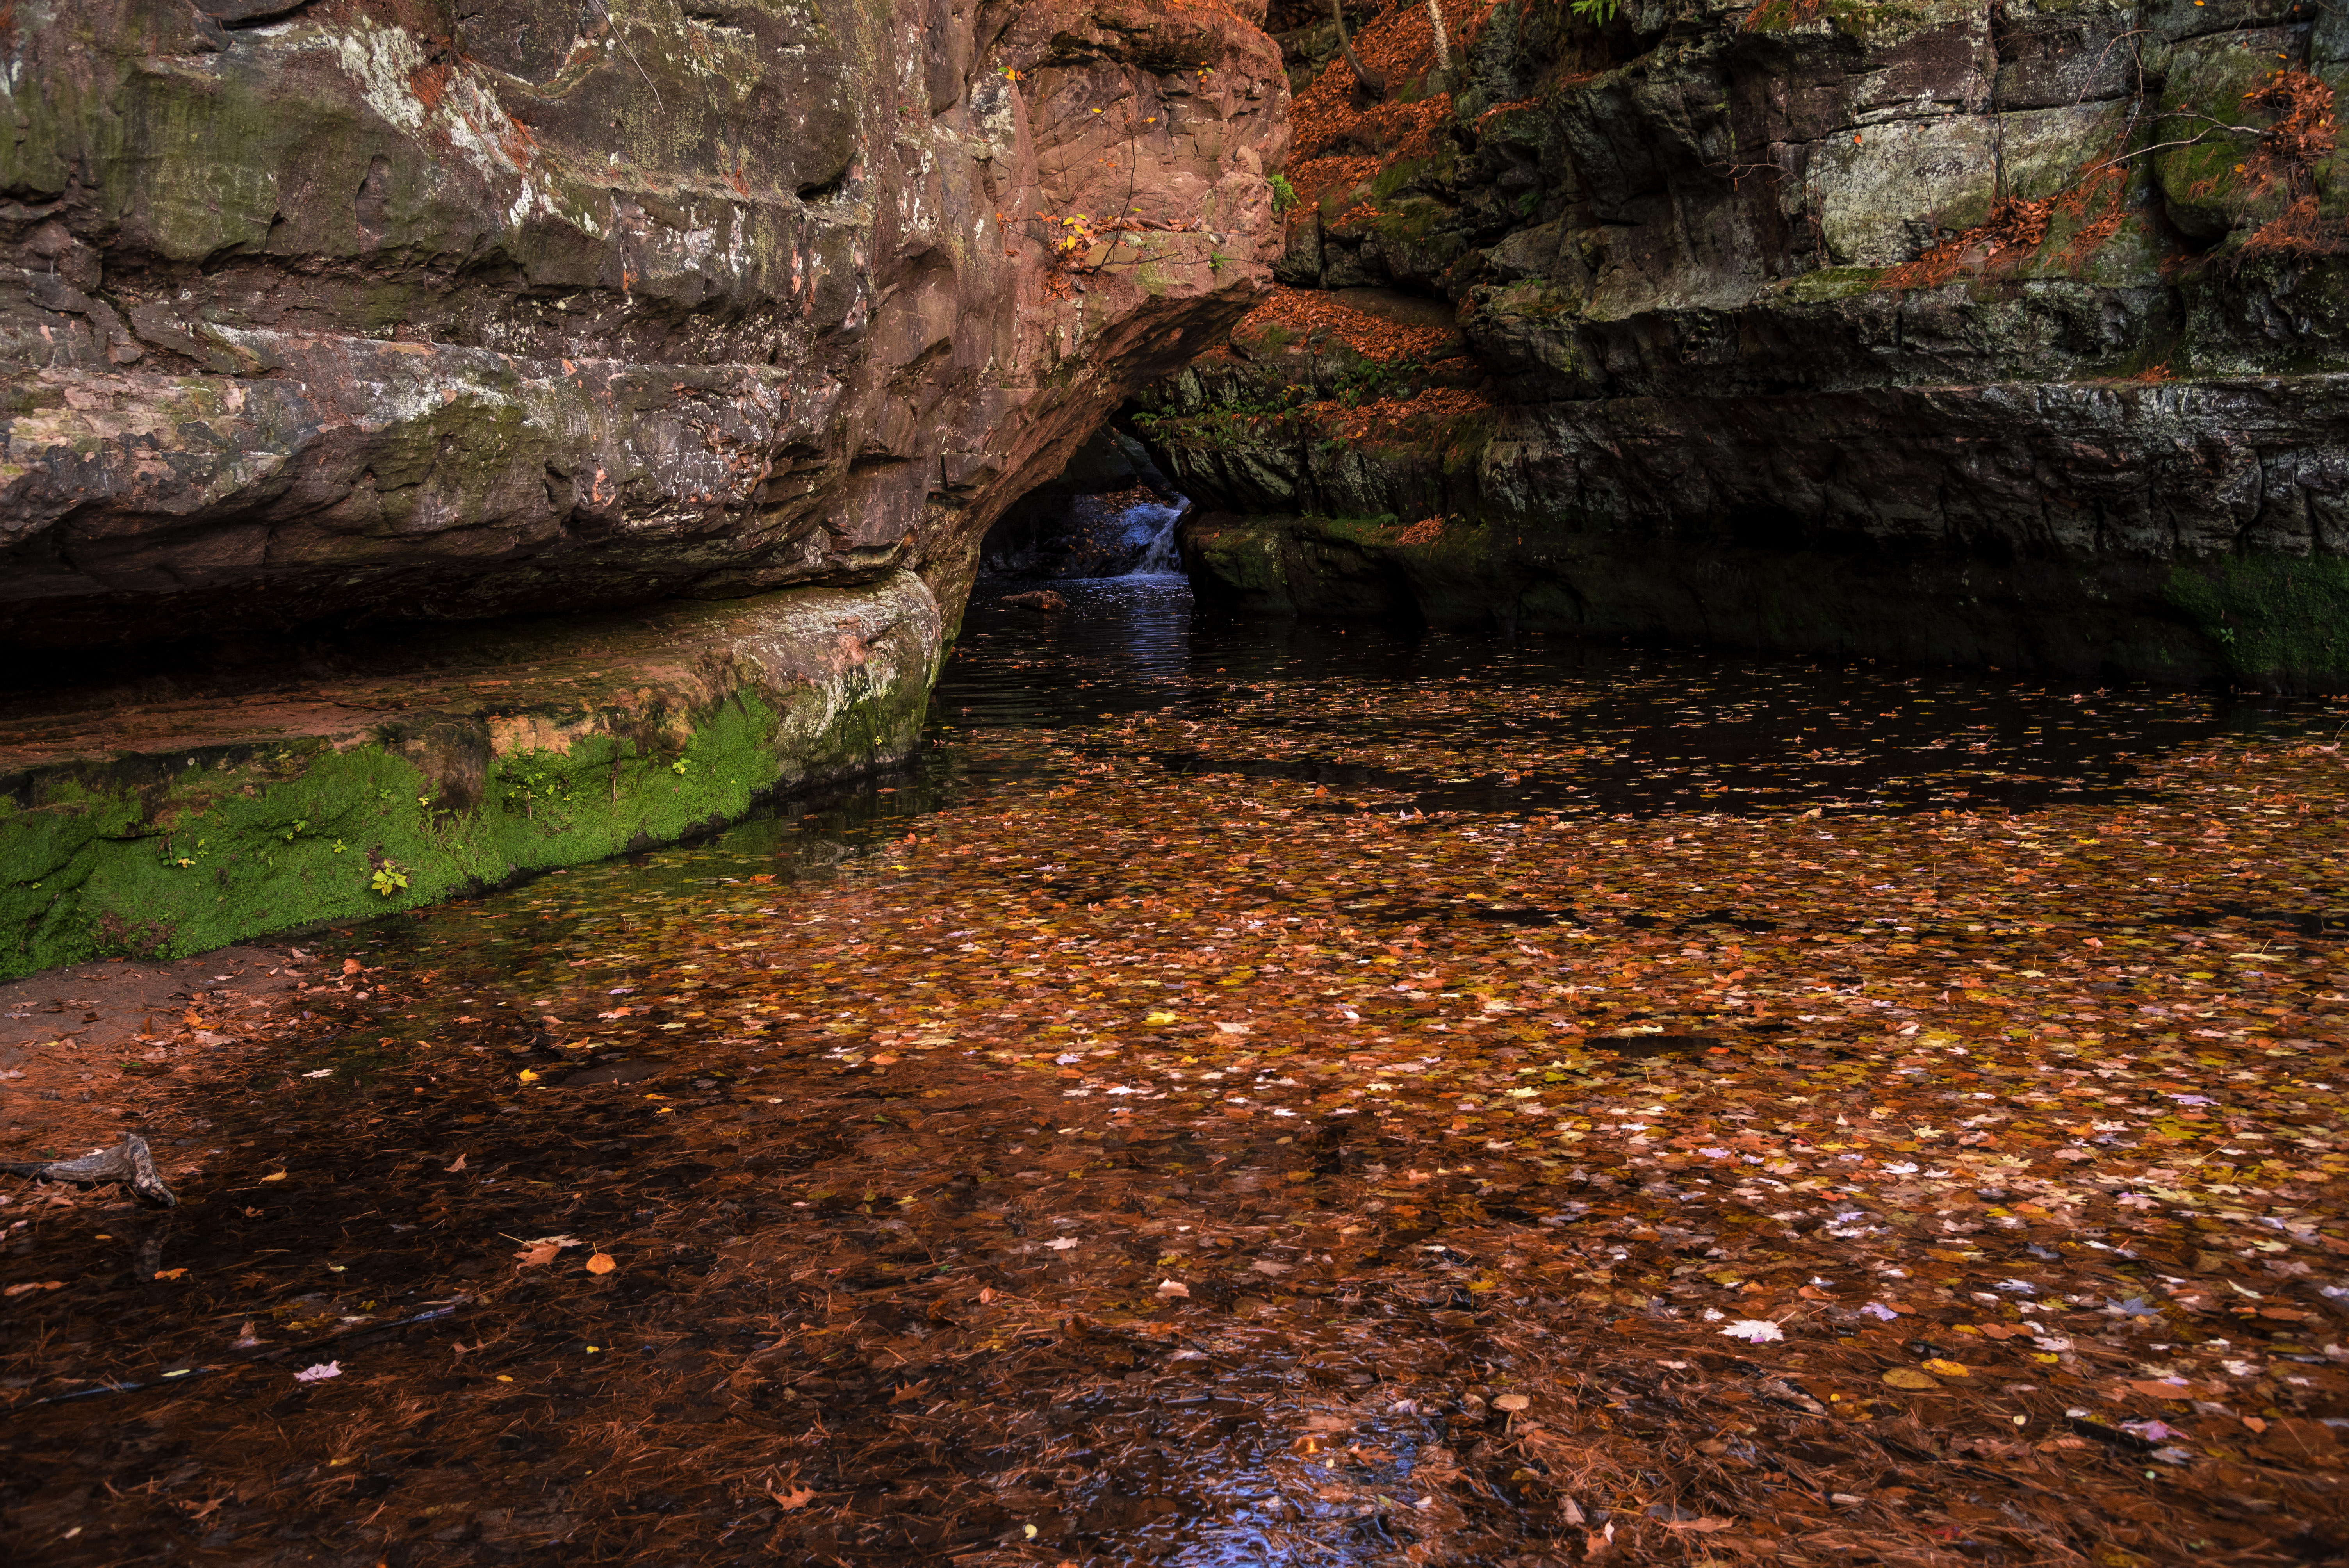 red-leaves-in-the-waters-of-the-gorge-pewits-nest-wisconsin.jpg